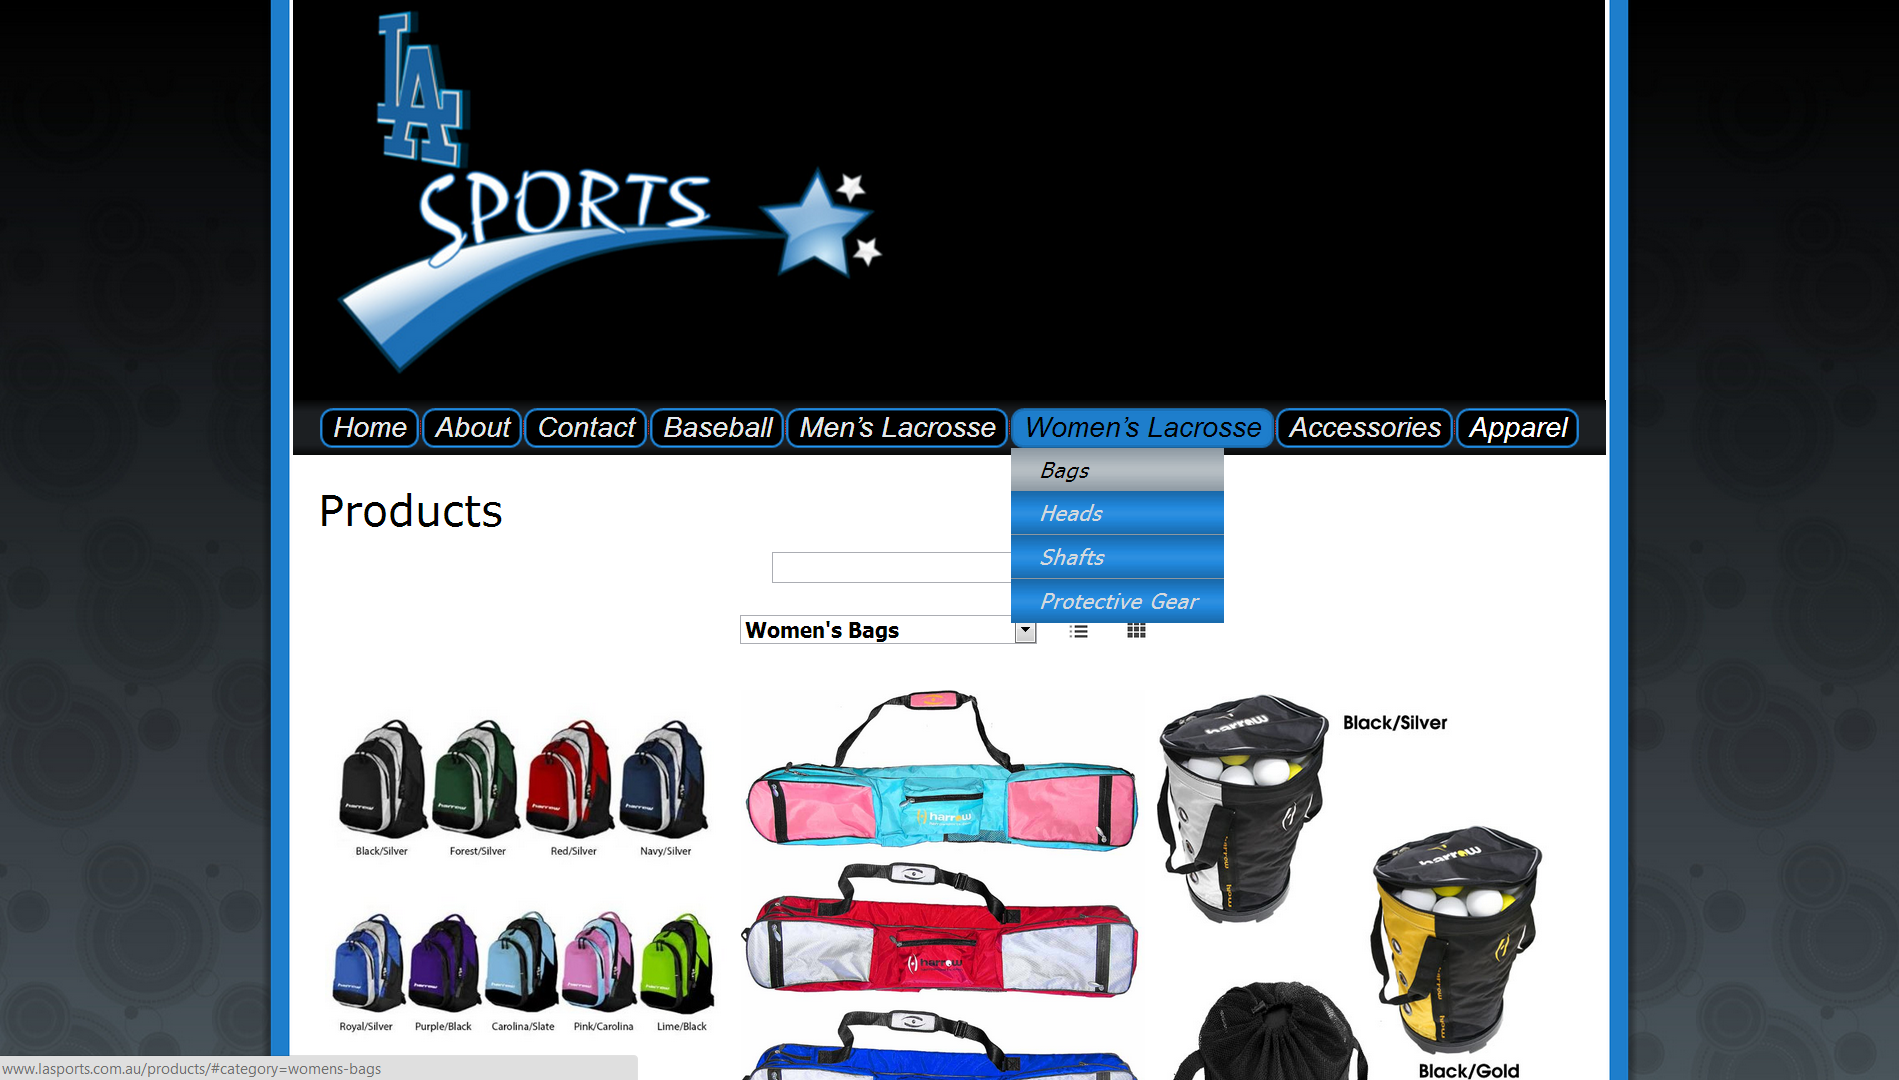 Online Shop Website for La Sports